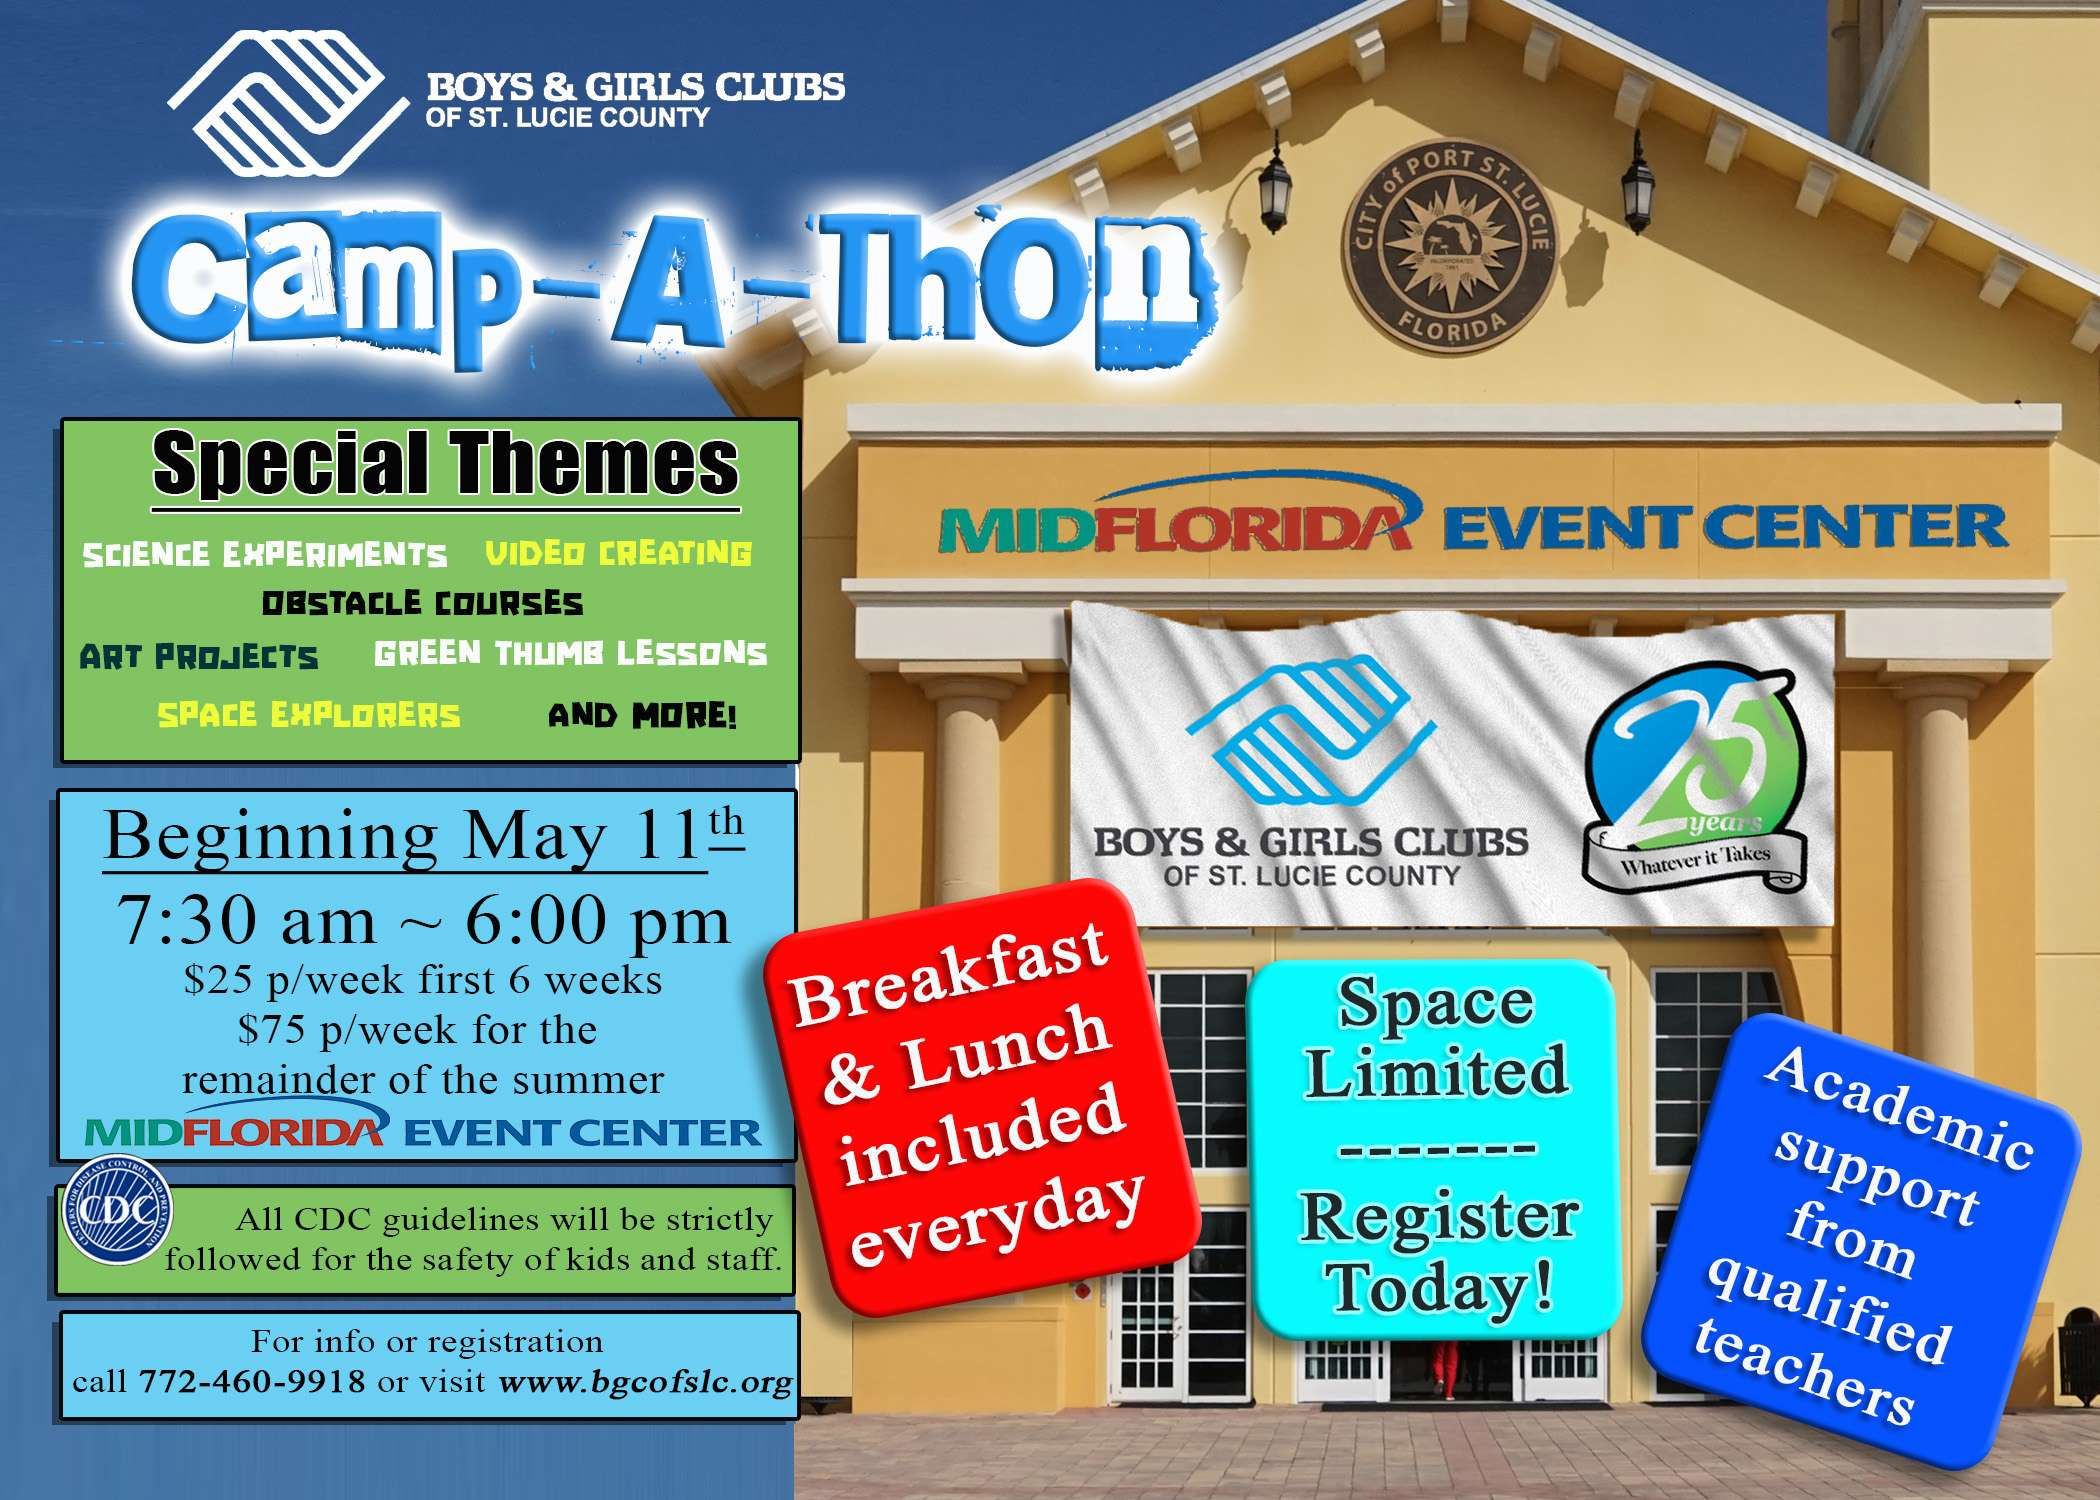 Boys & Girls Clubs Of St. Lucie County Are Back With An HUGE New Club!